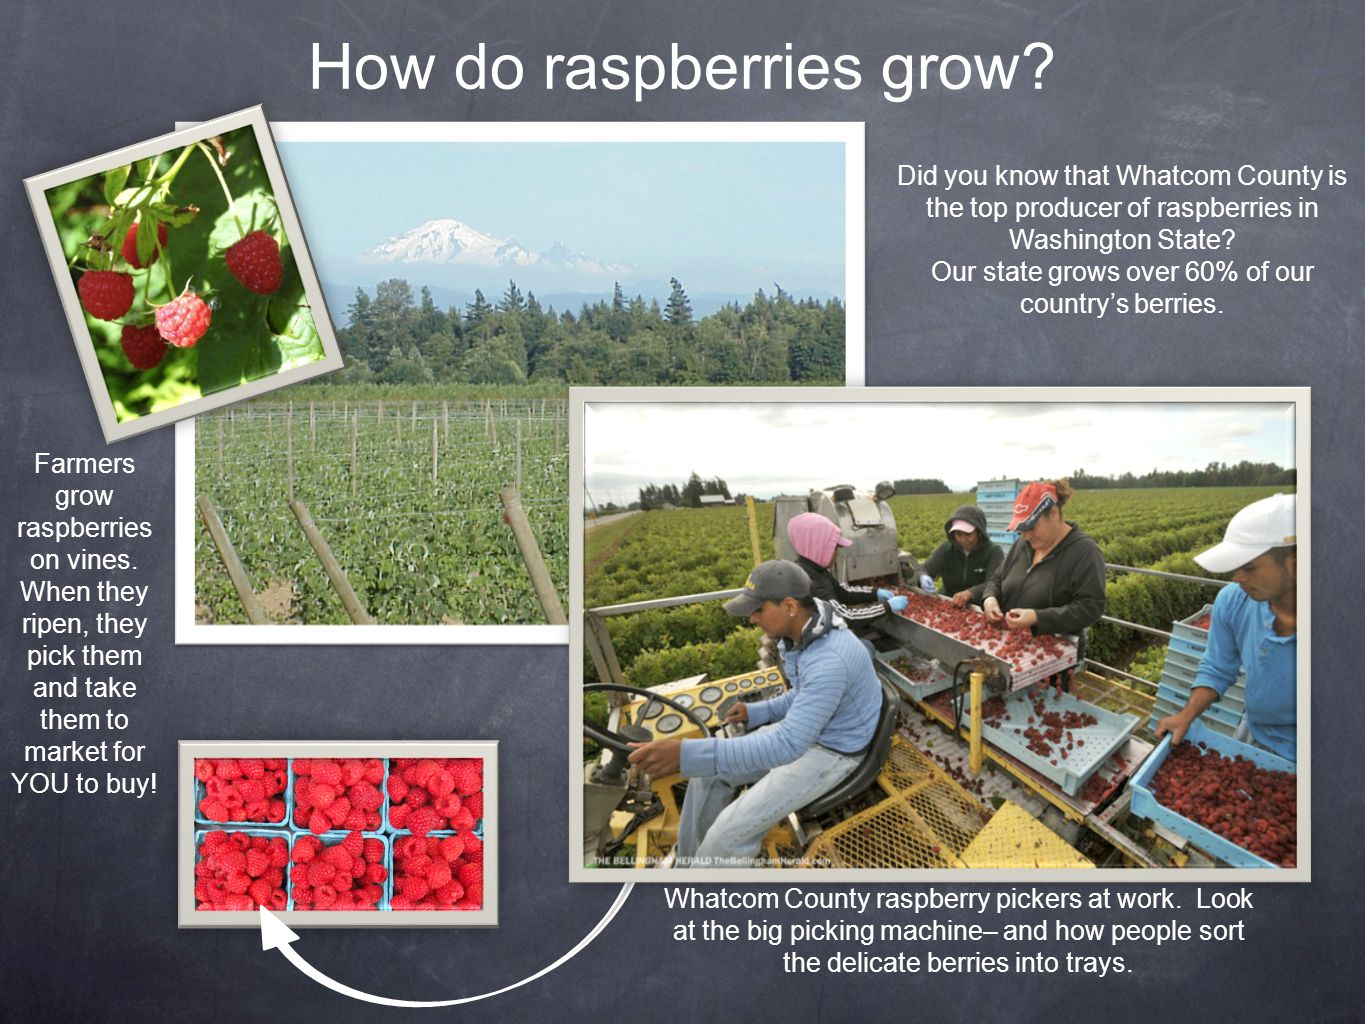 How do raspberries grow? Farmers grow raspberries on vines. When they ripen, they pick them and take them to market for YOU to buy! Did you know that